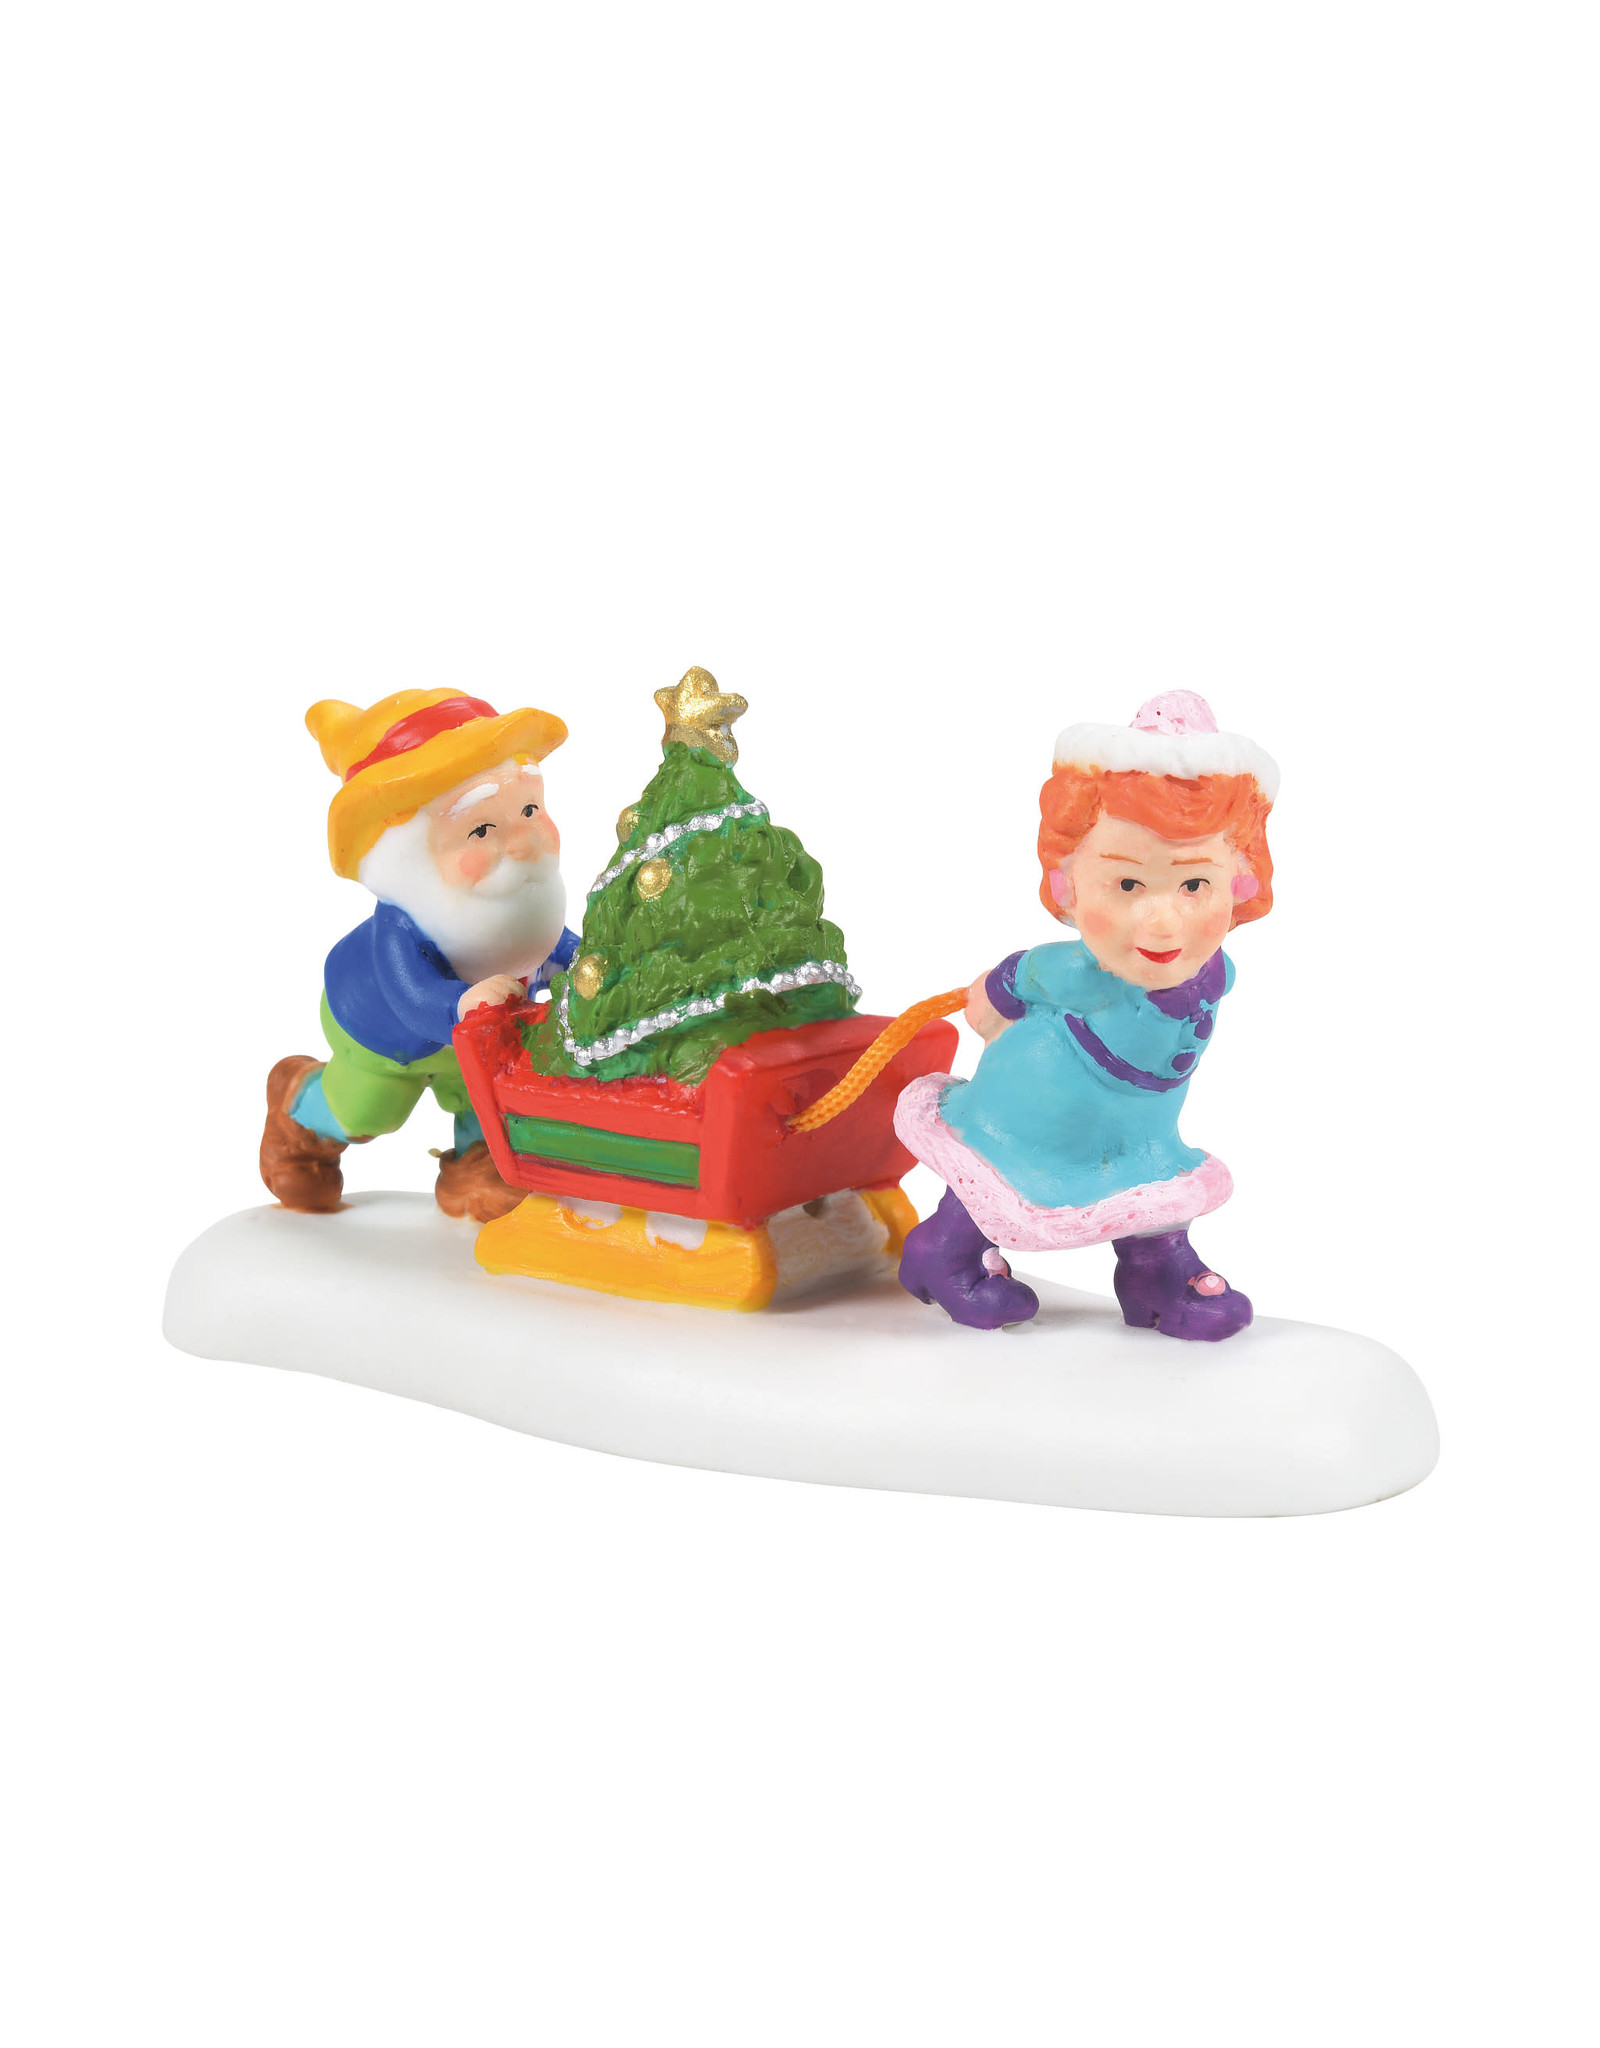 Department 56 Just in Time for Christmas